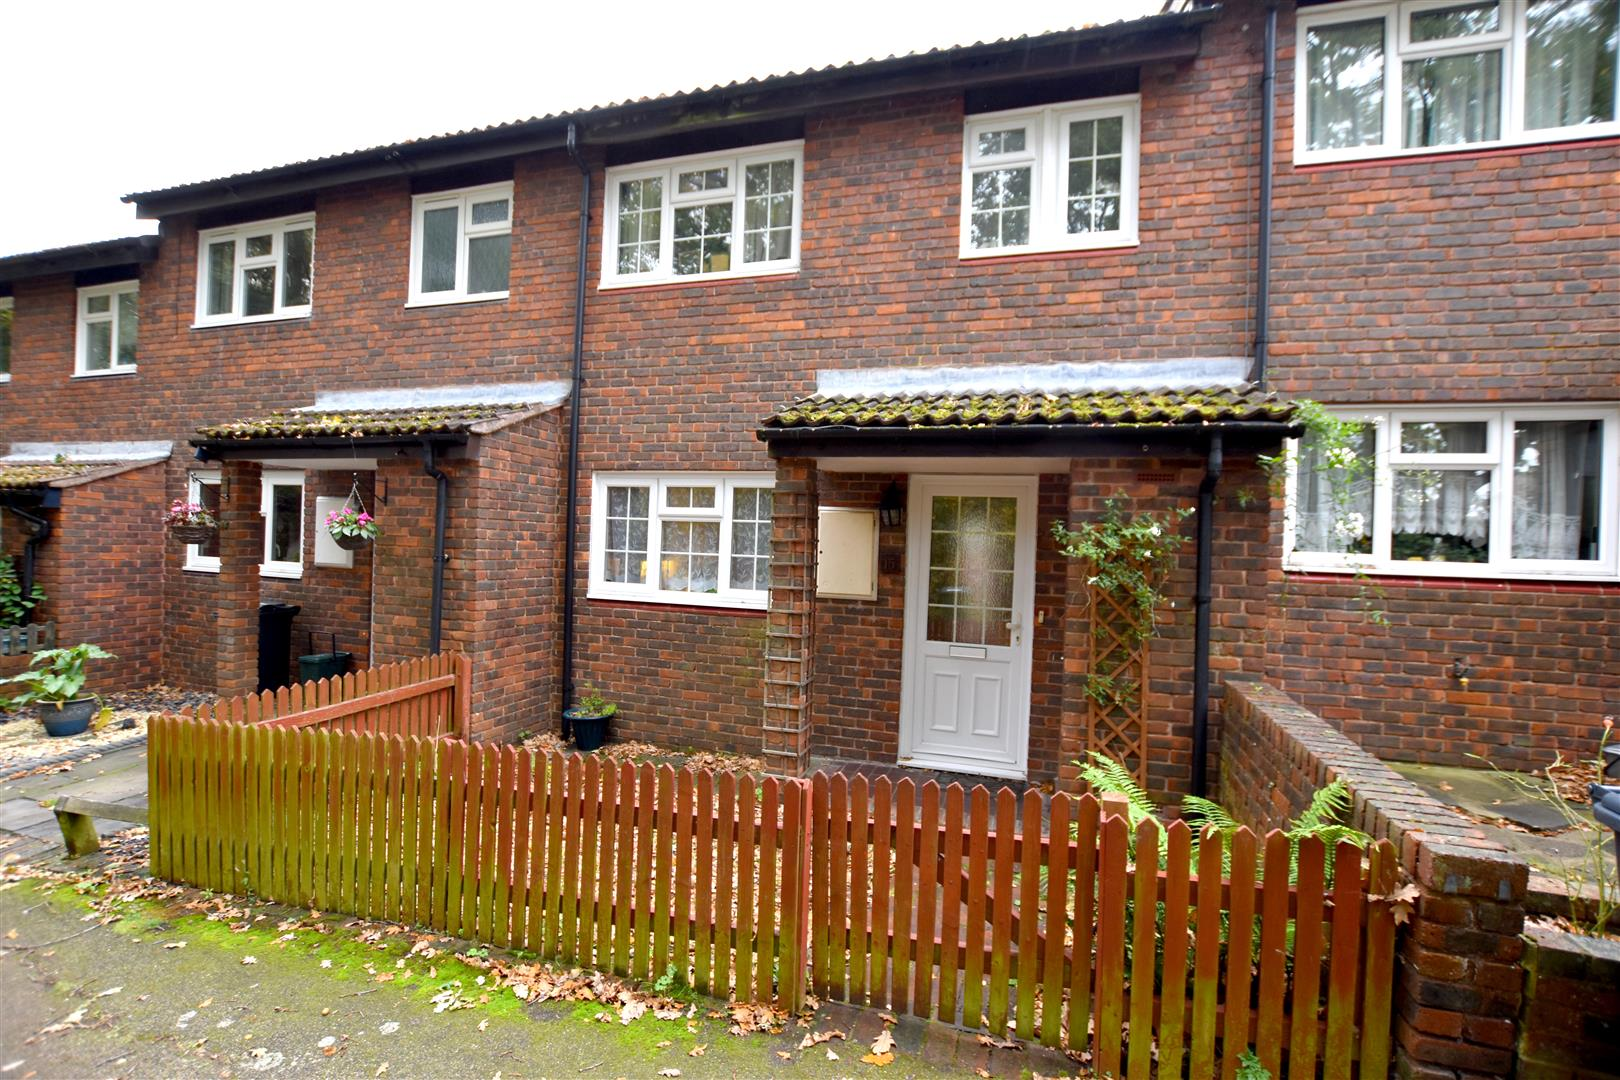 2 Bedrooms Terraced House for sale in Kiln Walk, Redhill